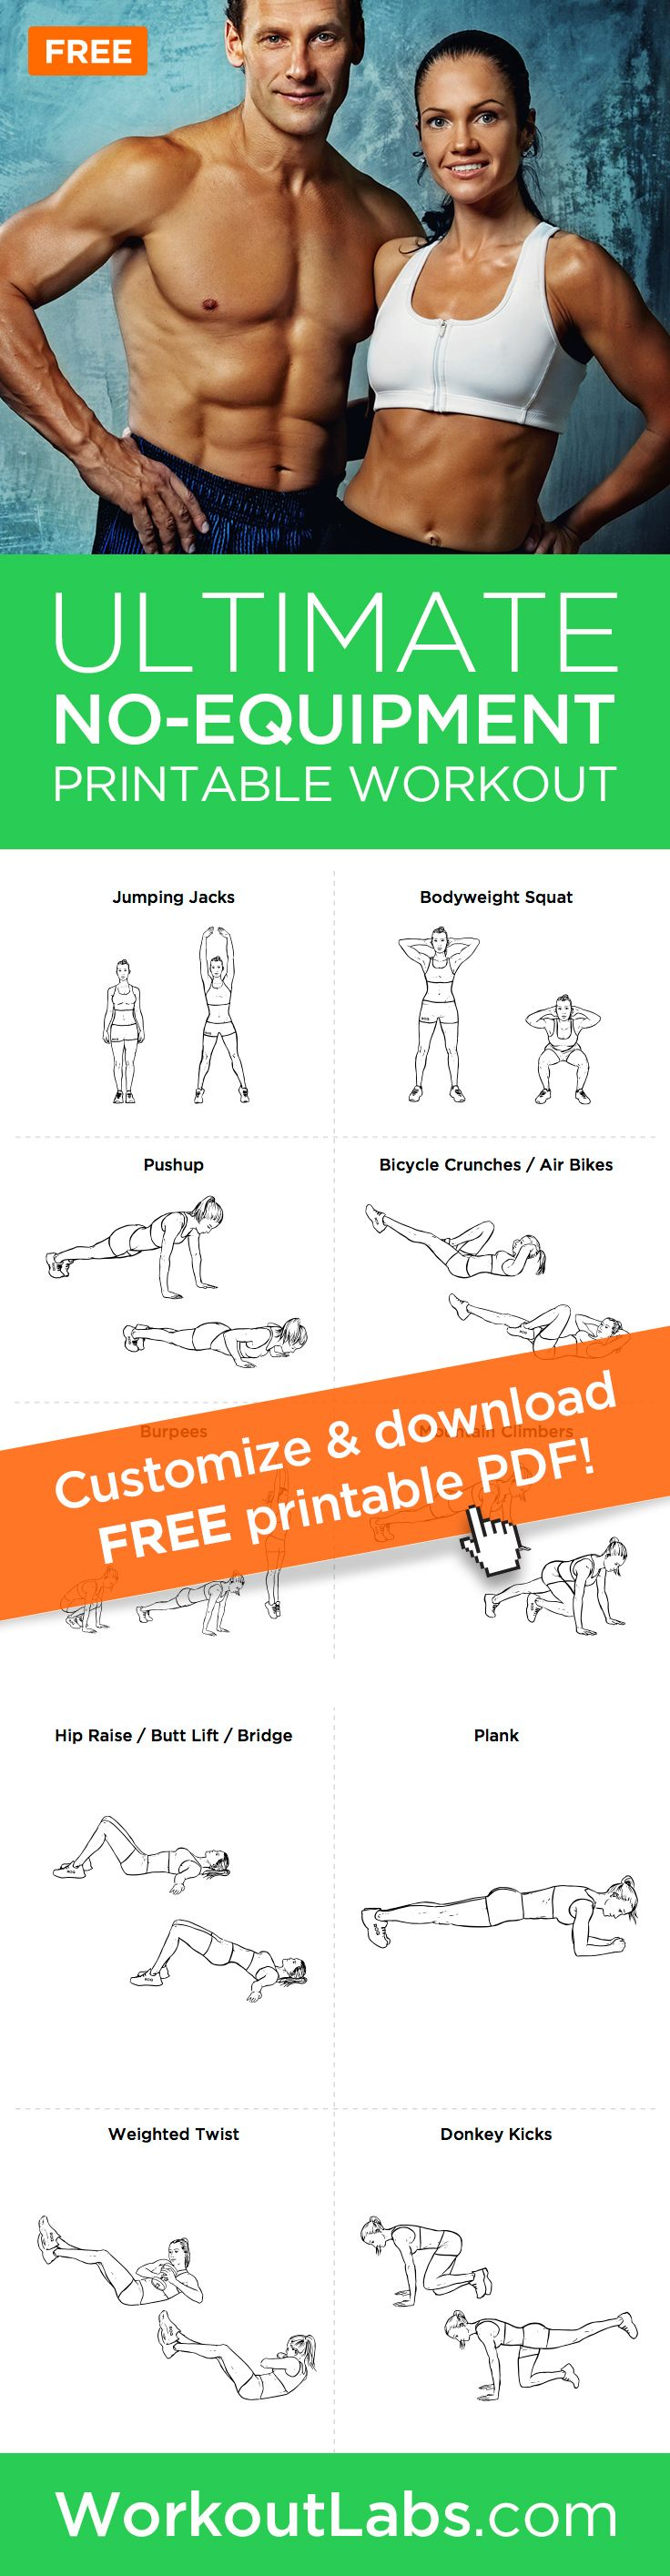 Ultimate At-Home No Equipment Workout Plan for Men and Women – Need a good full-body home-based workout that doesnt require gym equipment? Try this intense two-page bodyweight workout that you can do anywhere!